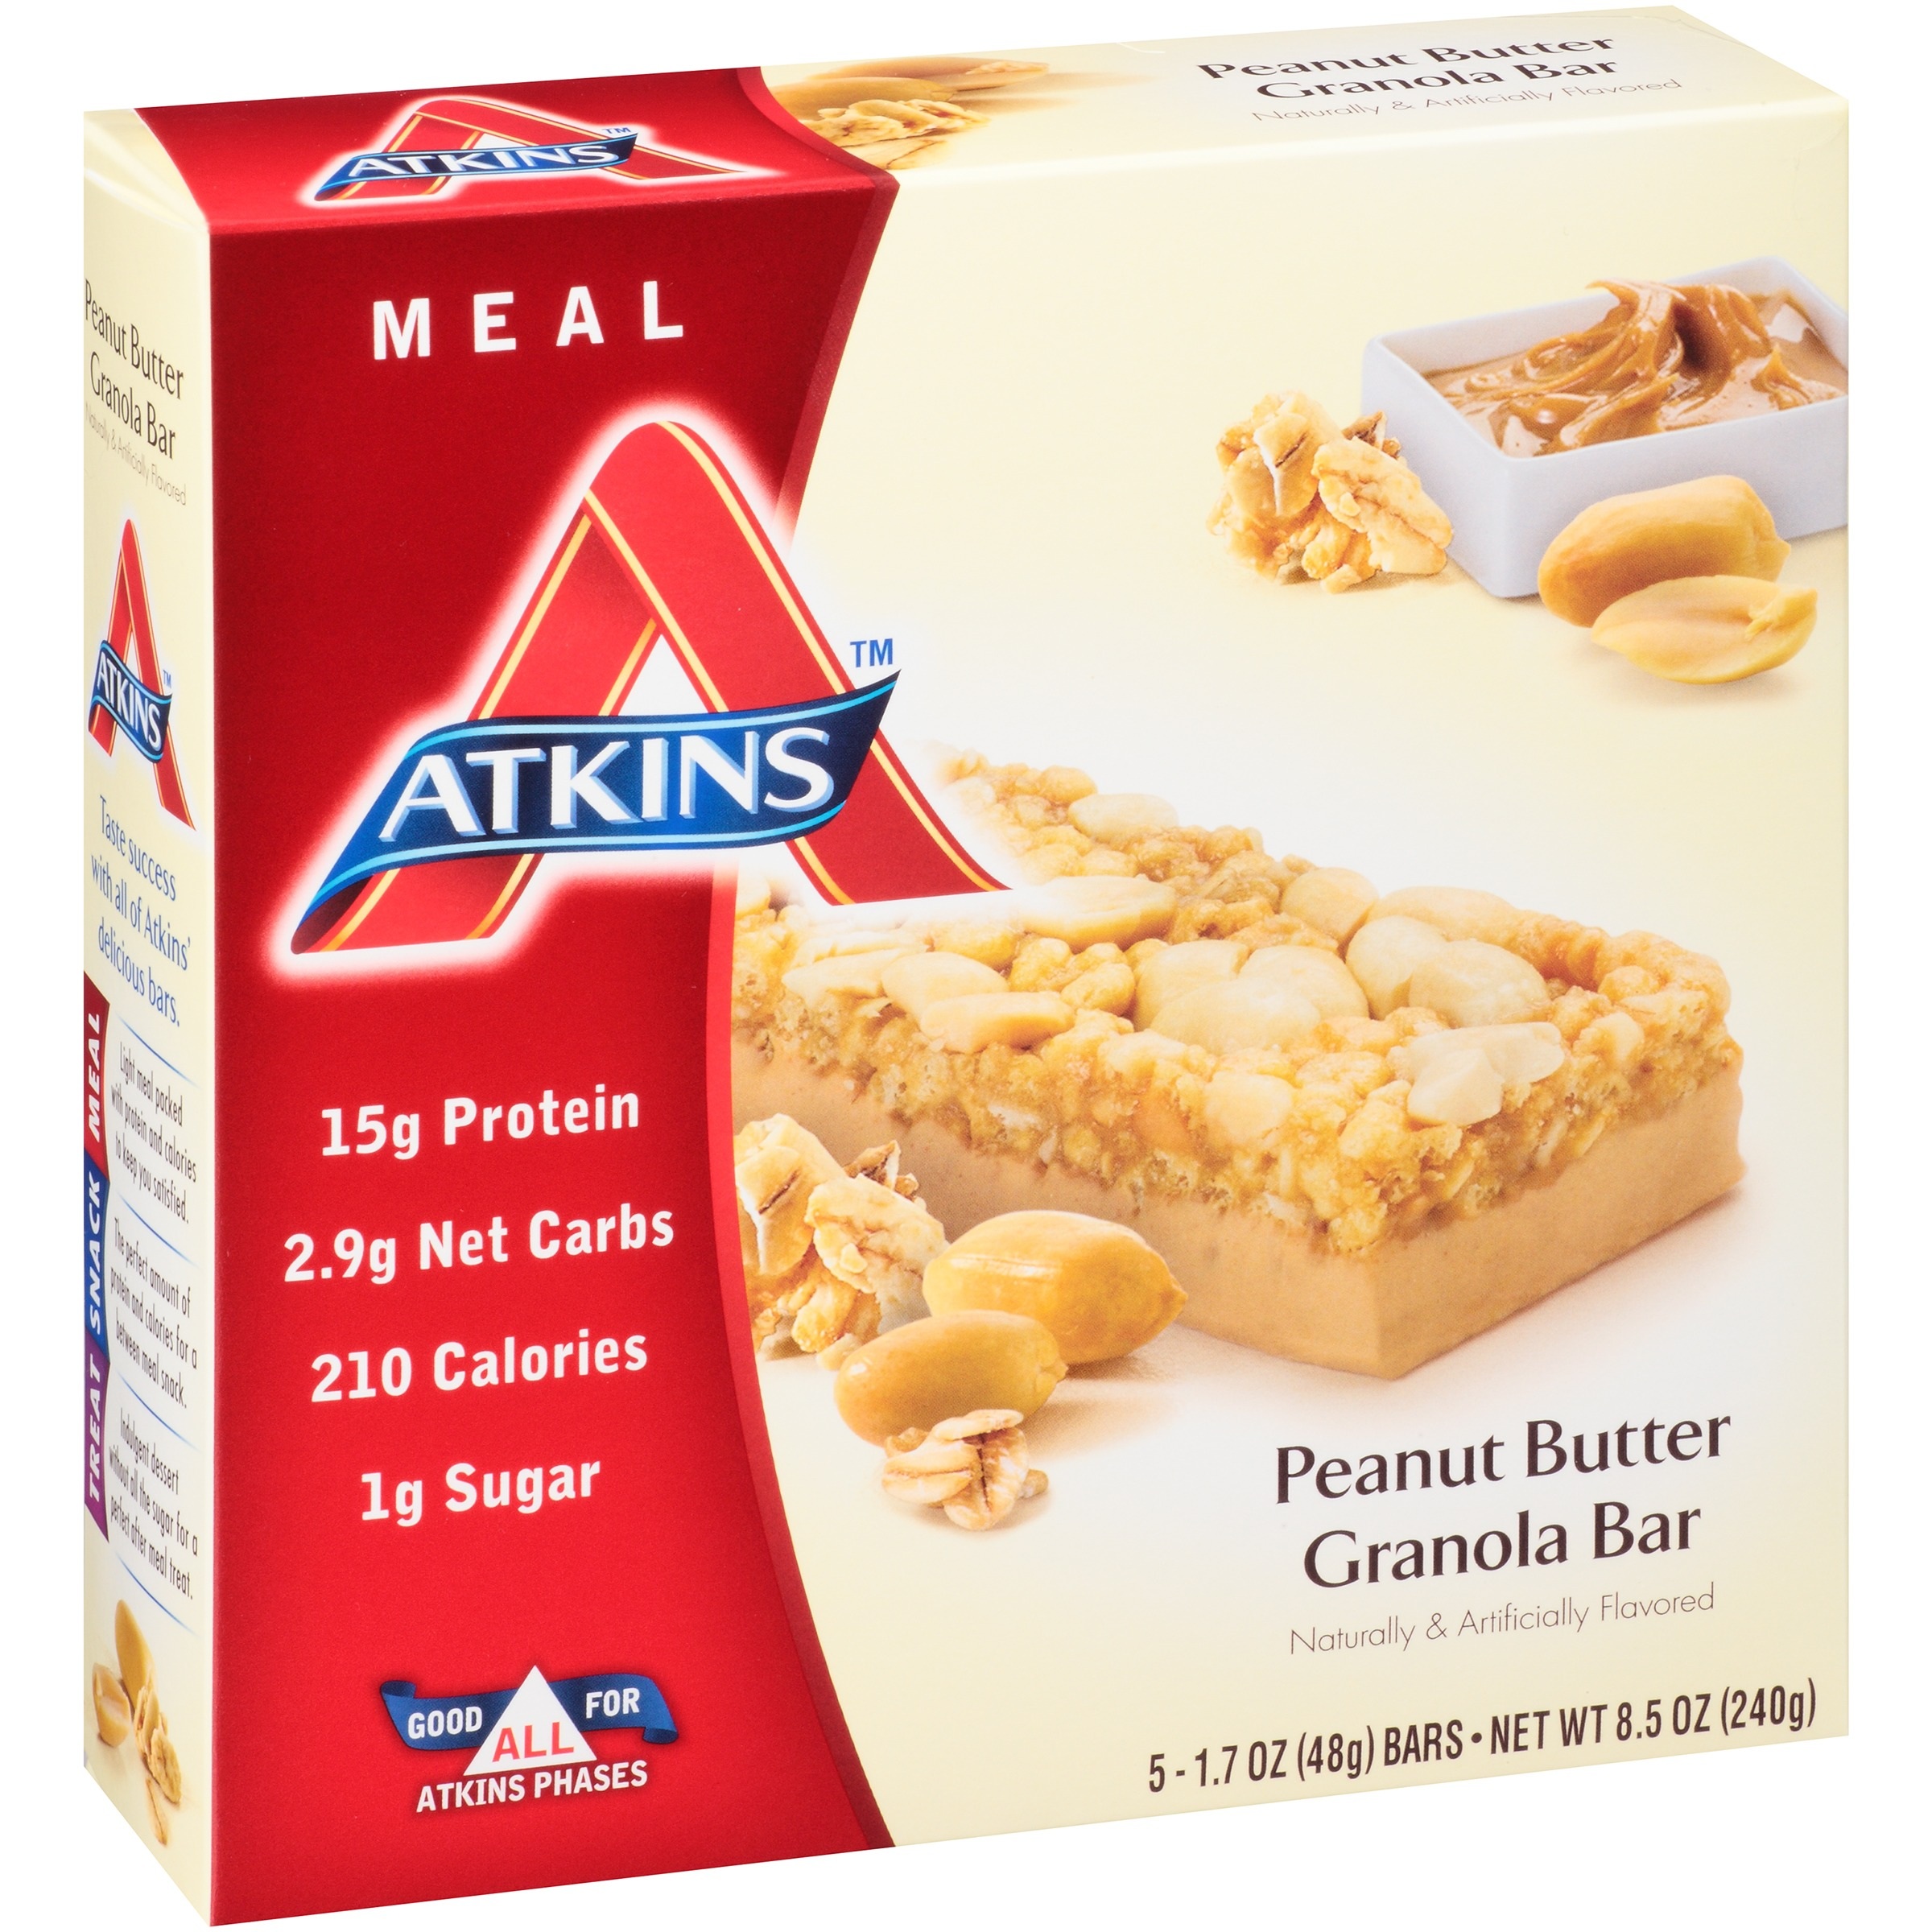 Atkins Peanut Butter Granola Bar, 1.7oz, 5-pack (Meal Replacement)